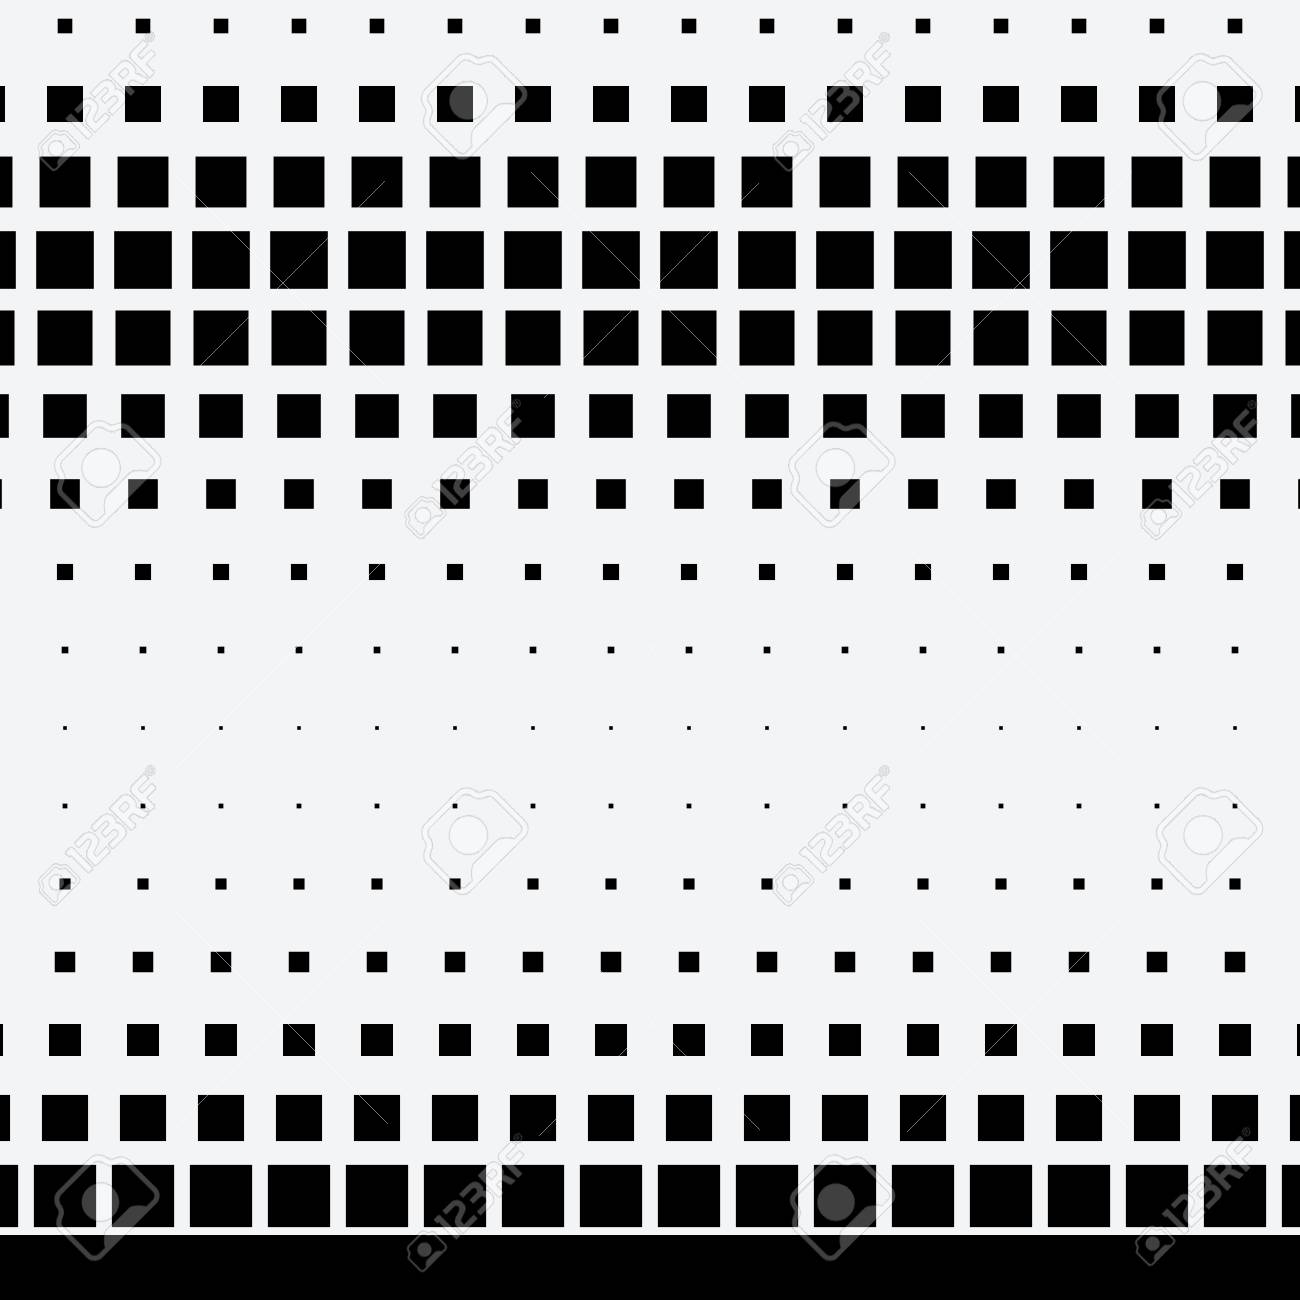 Halftone dots on white background - 91856067